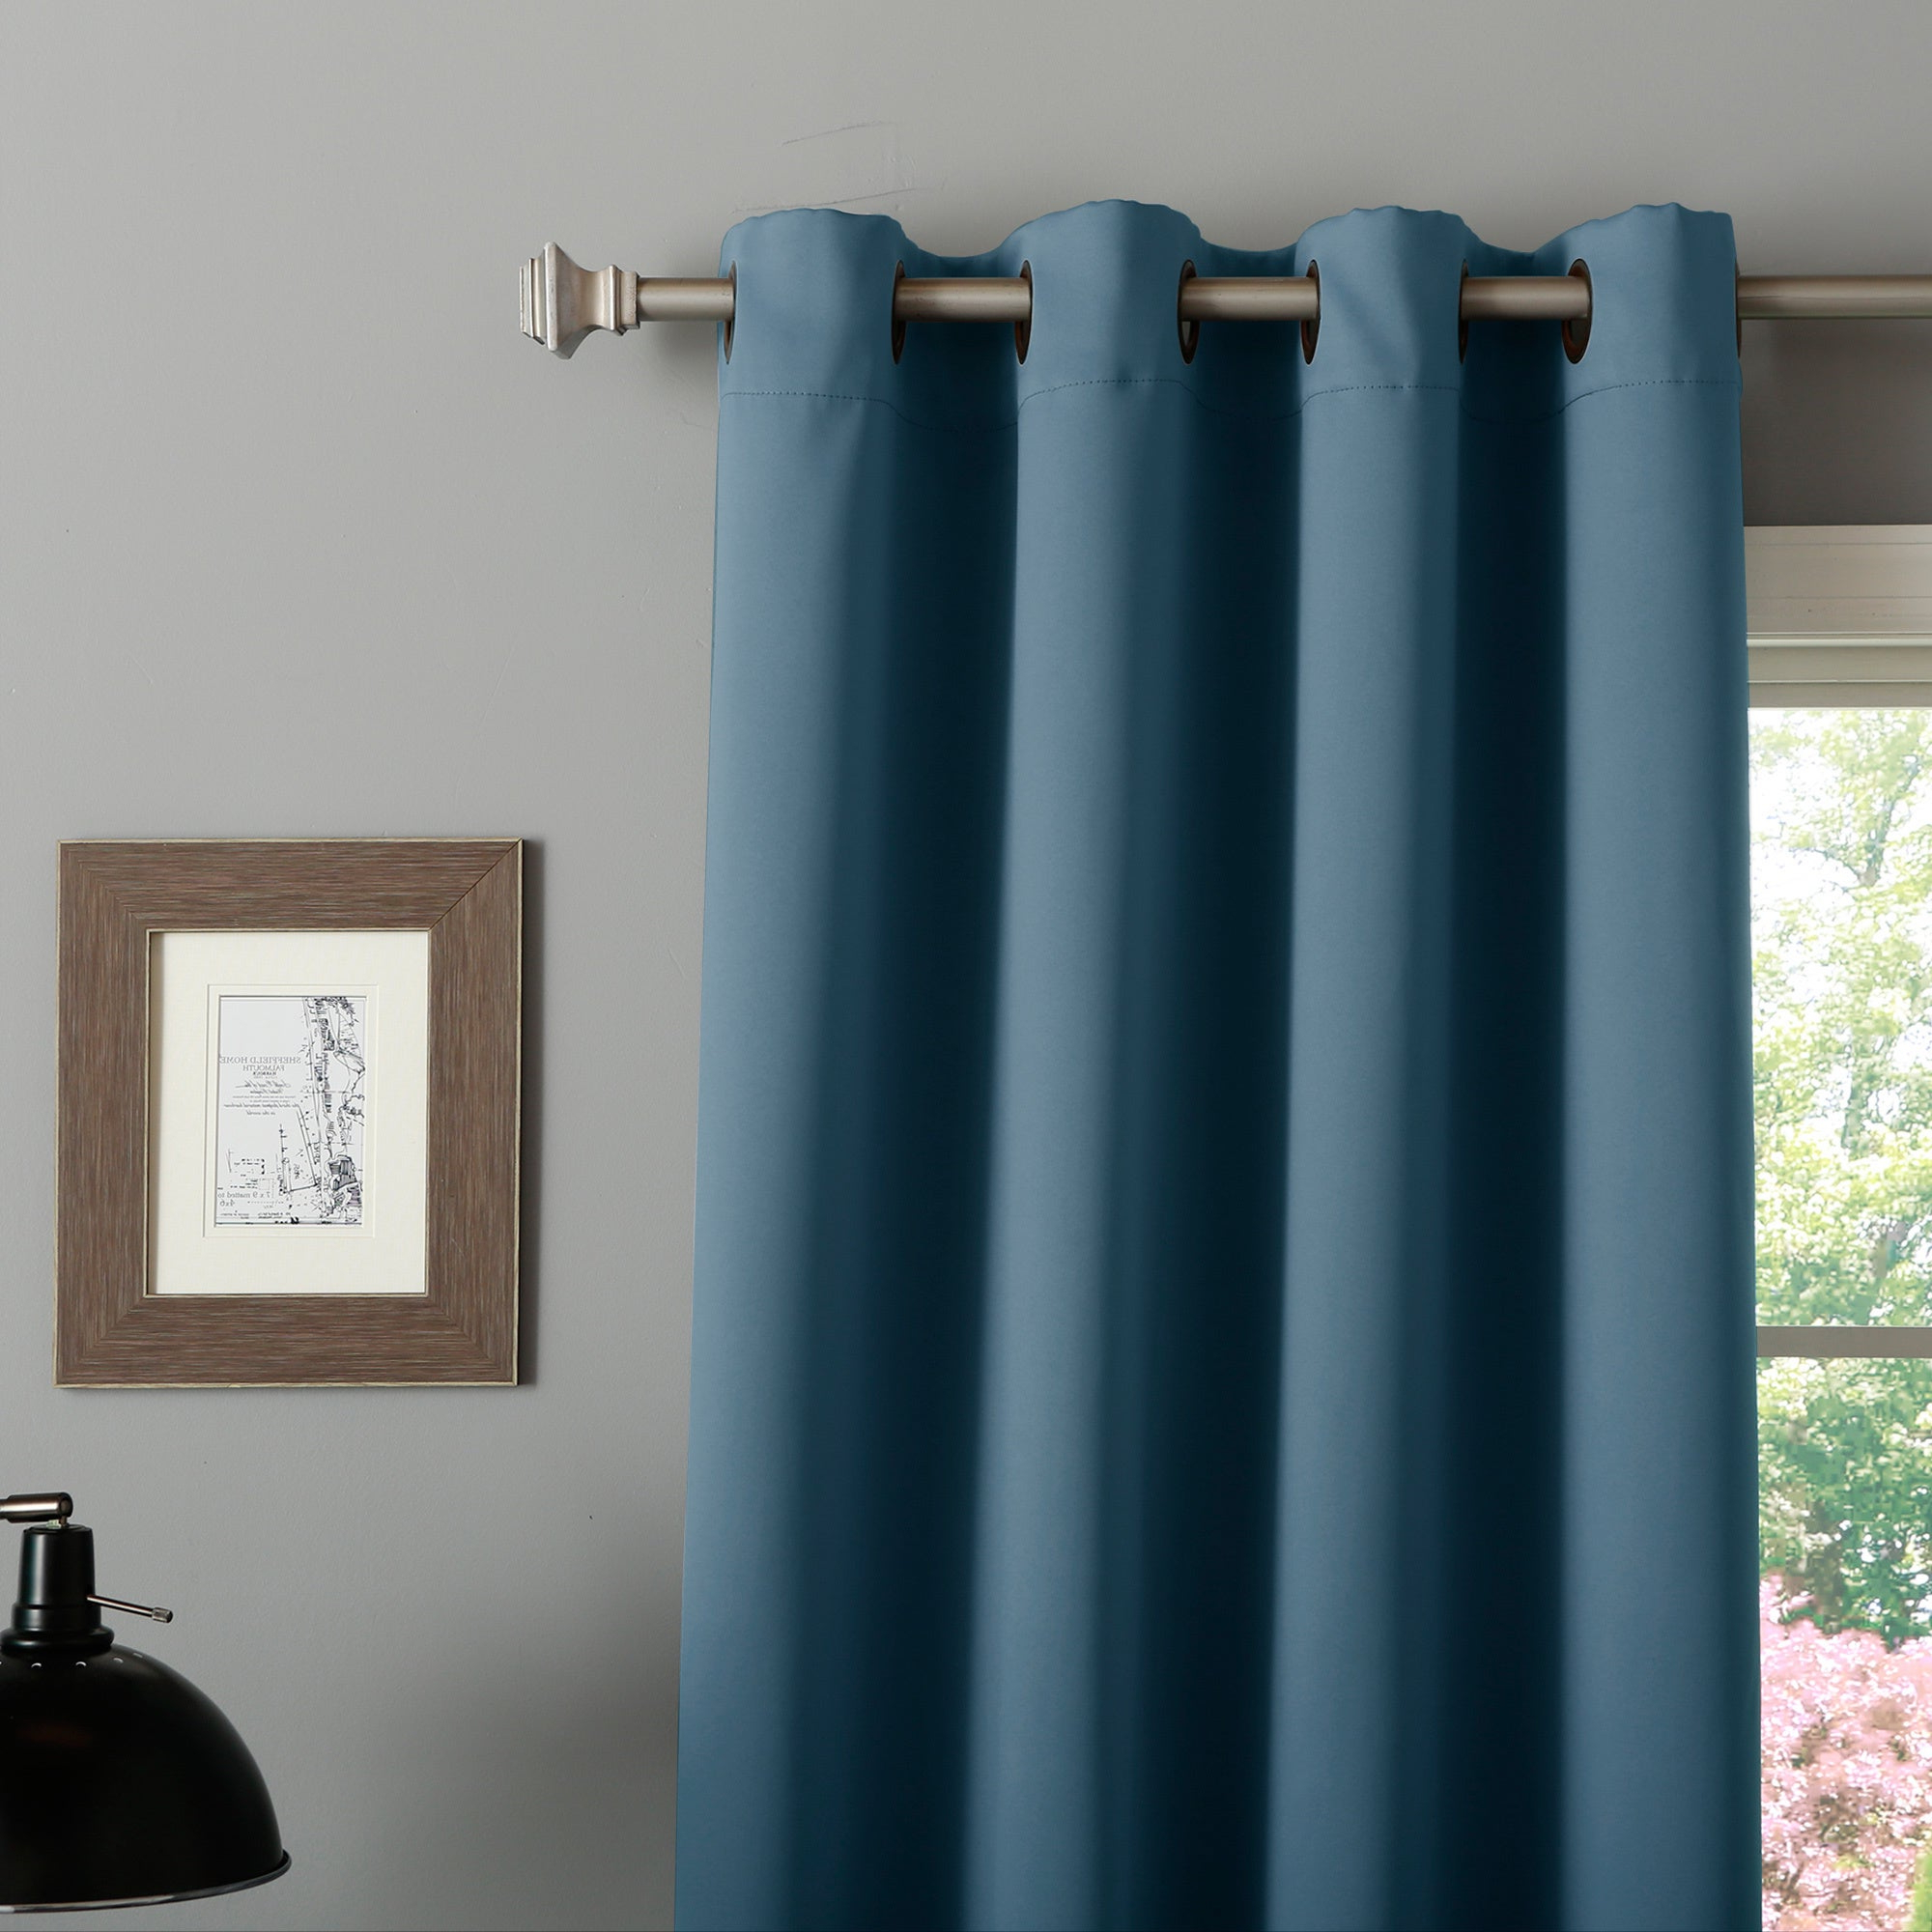 Aurora Home Thermal Insulated Blackout Grommet Top Curtain Panel Pair Intended For Most Current Thermal Insulated Blackout Grommet Top Curtain Panel Pairs (View 3 of 20)